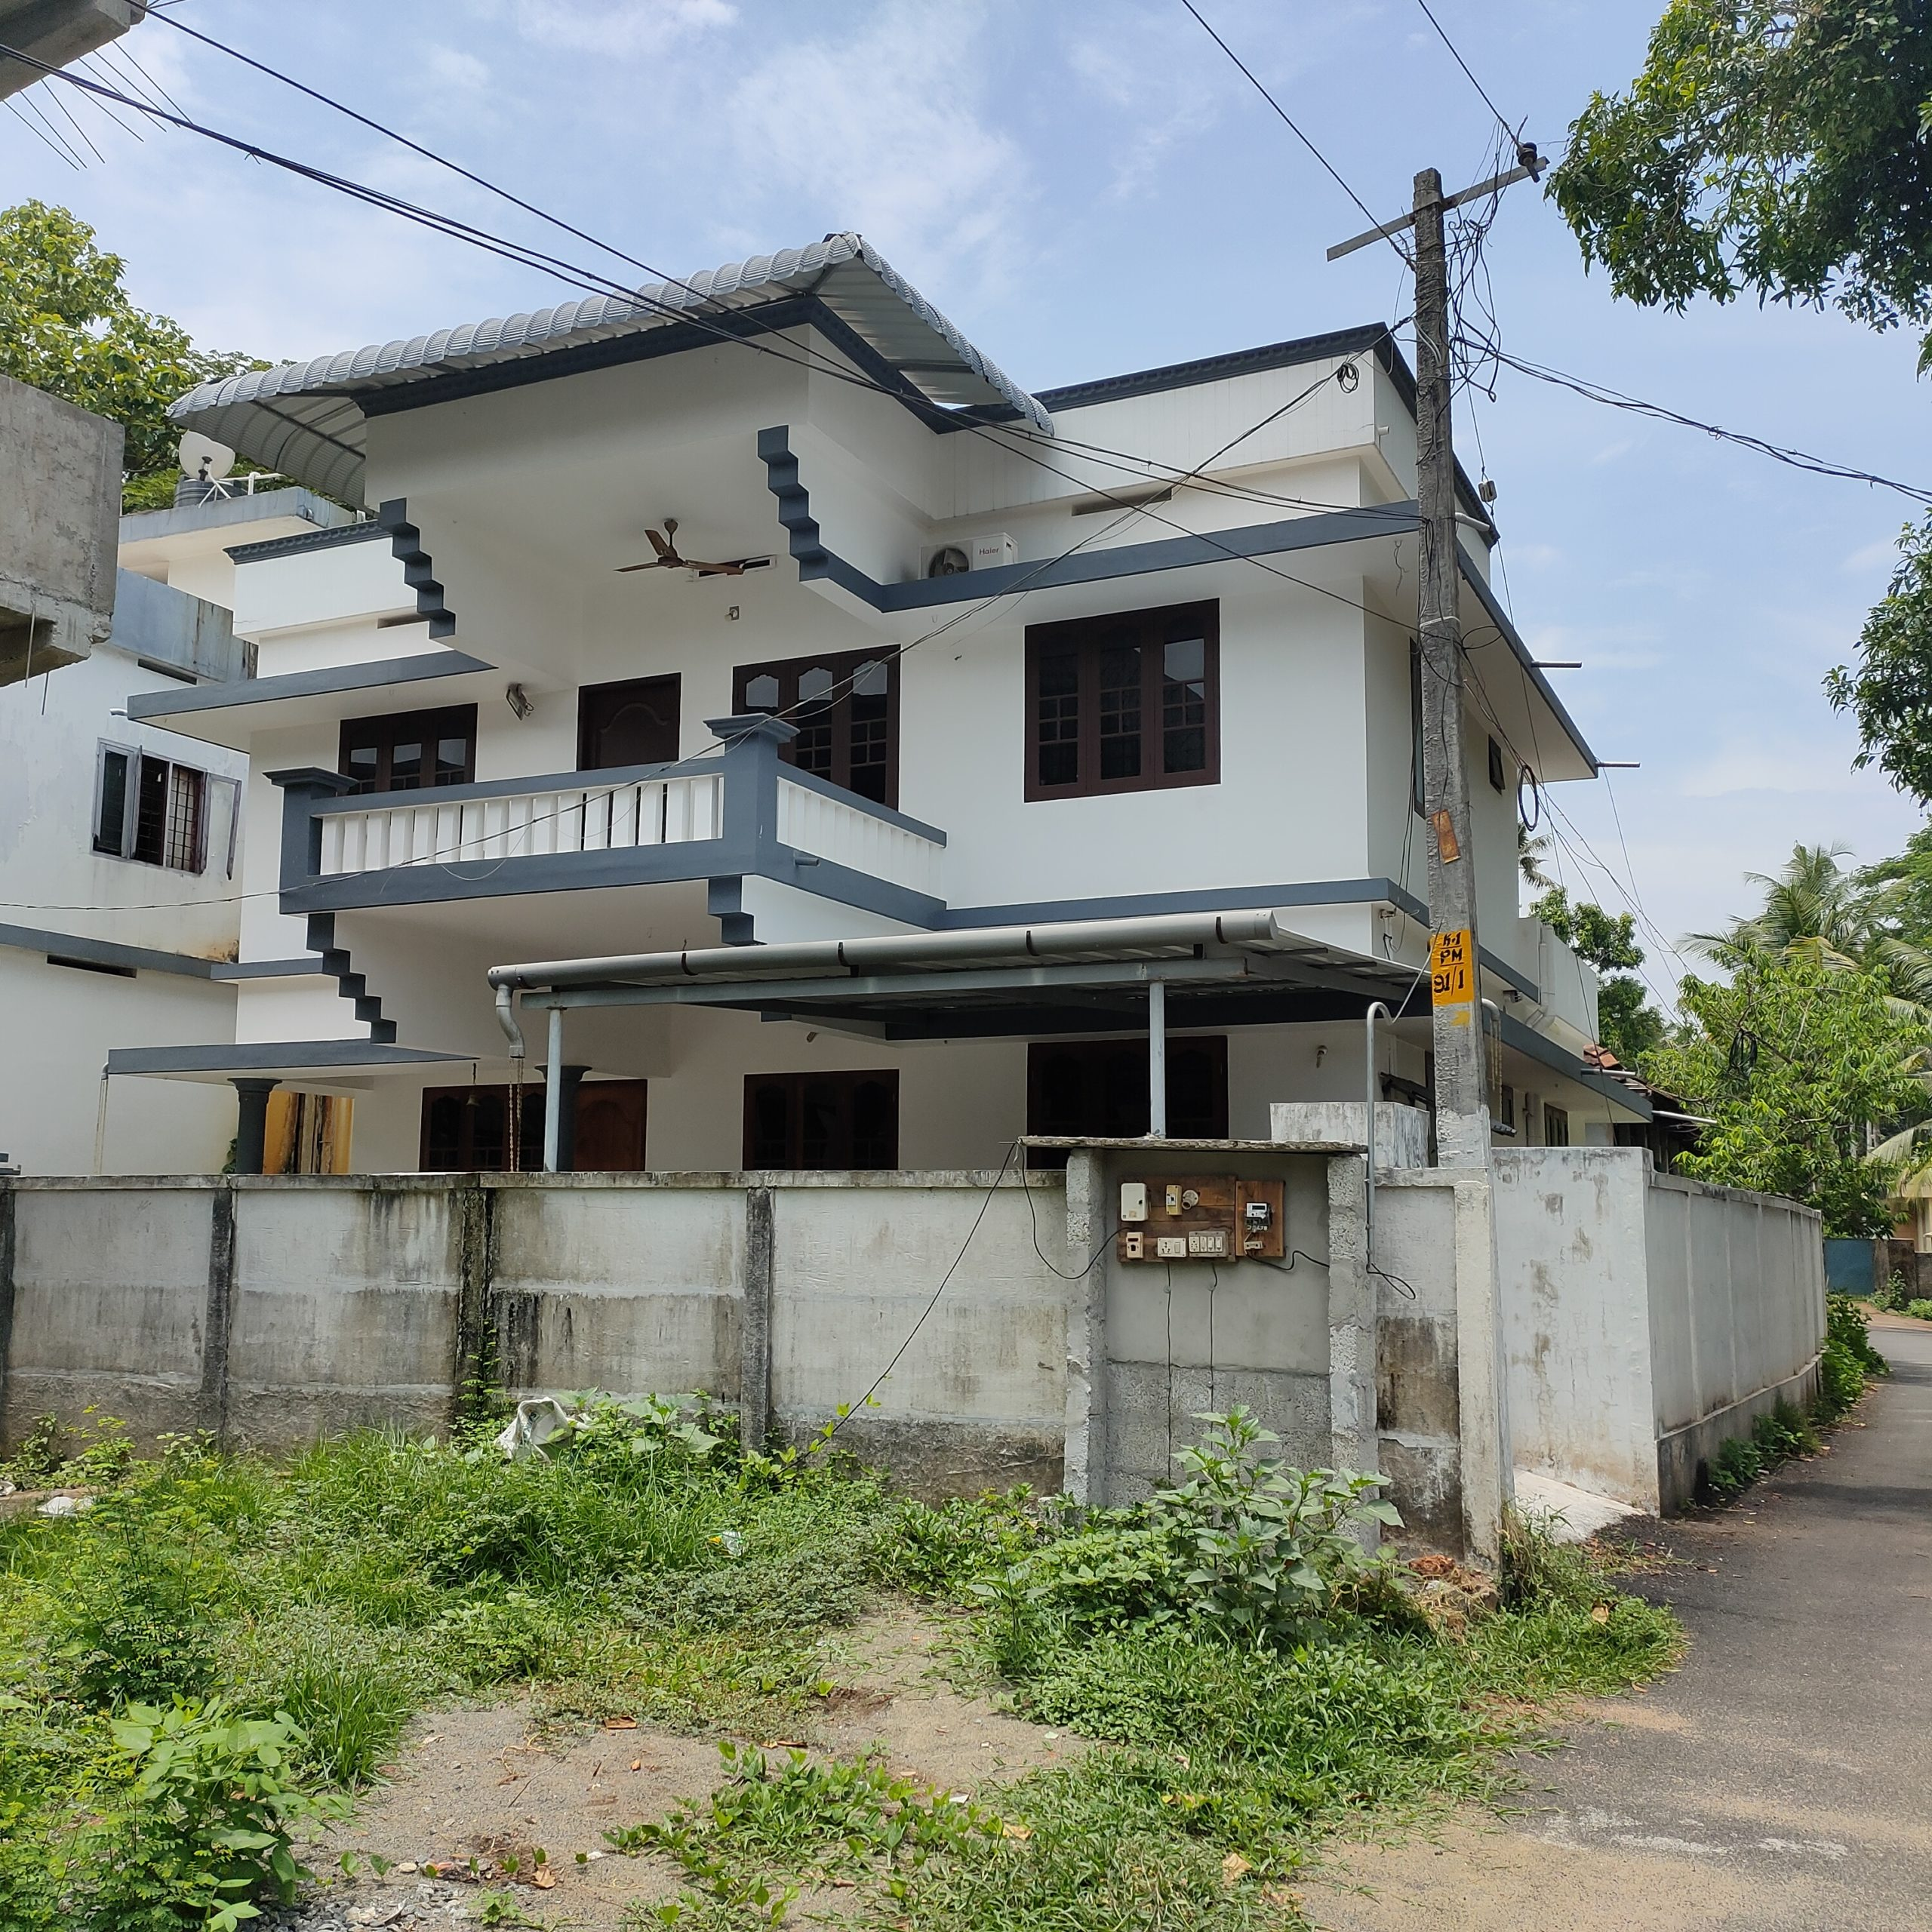 (Urgent Sale) 5BHK house for sale or exchange in Kodungallur